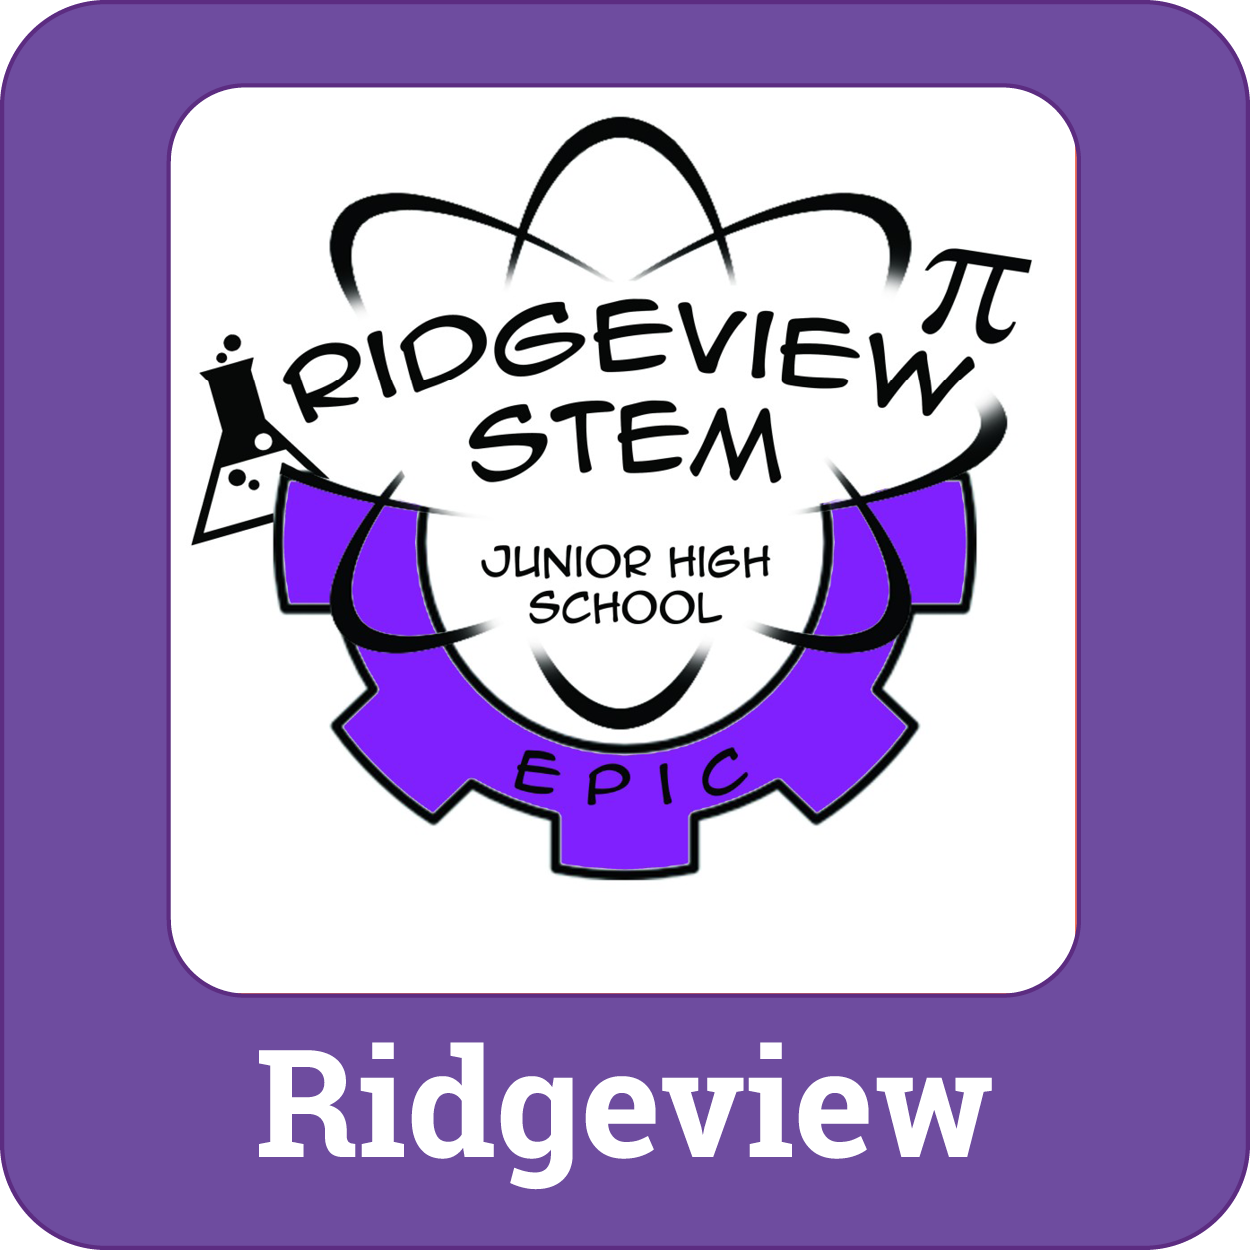 Link to Ridgeview Junior High's Information